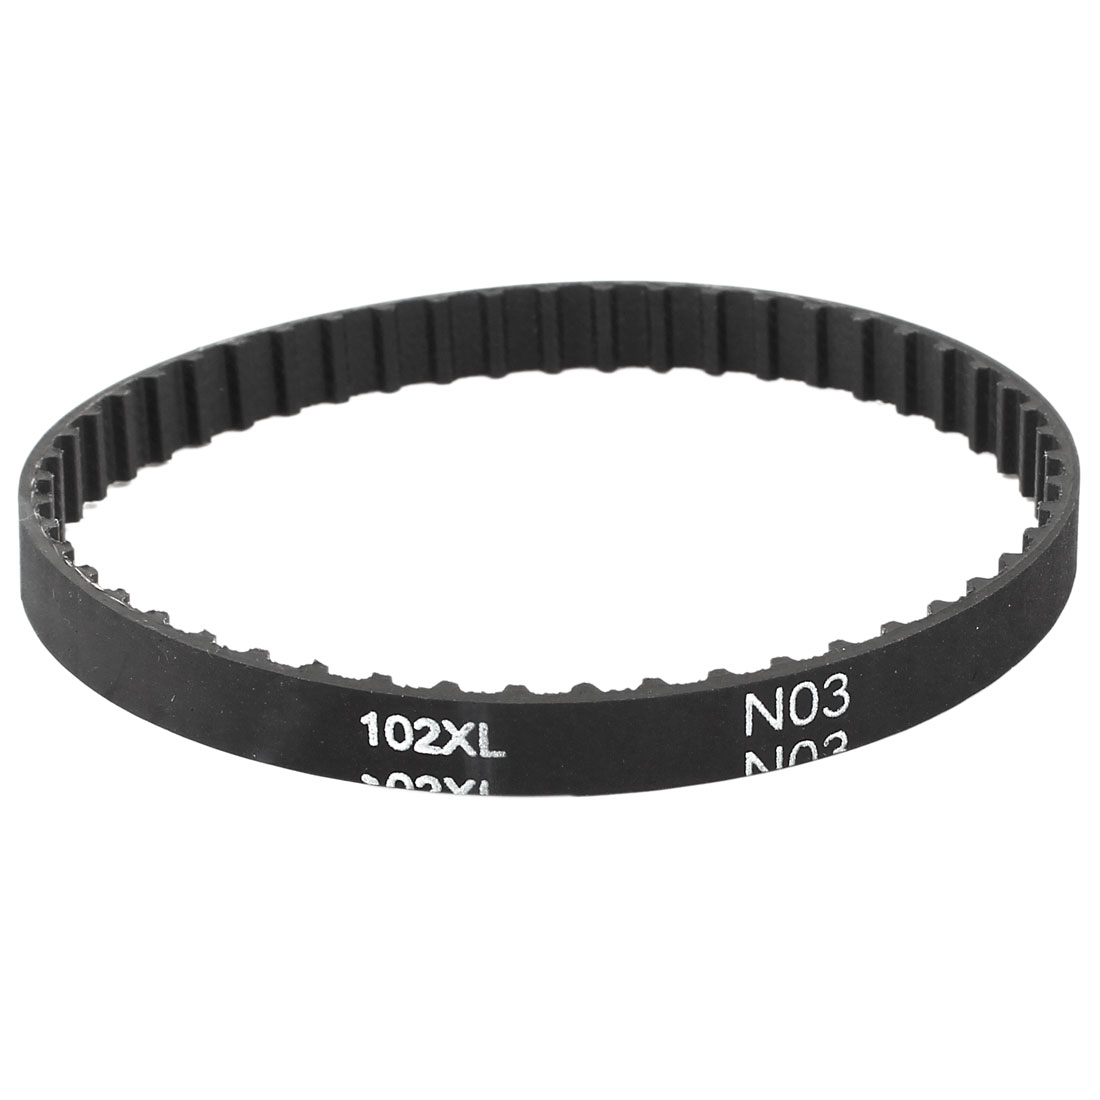 102XL 031 Engine Rubber Timing Belt 51 Teeth 5.08mm Pitch 7.9mm Width